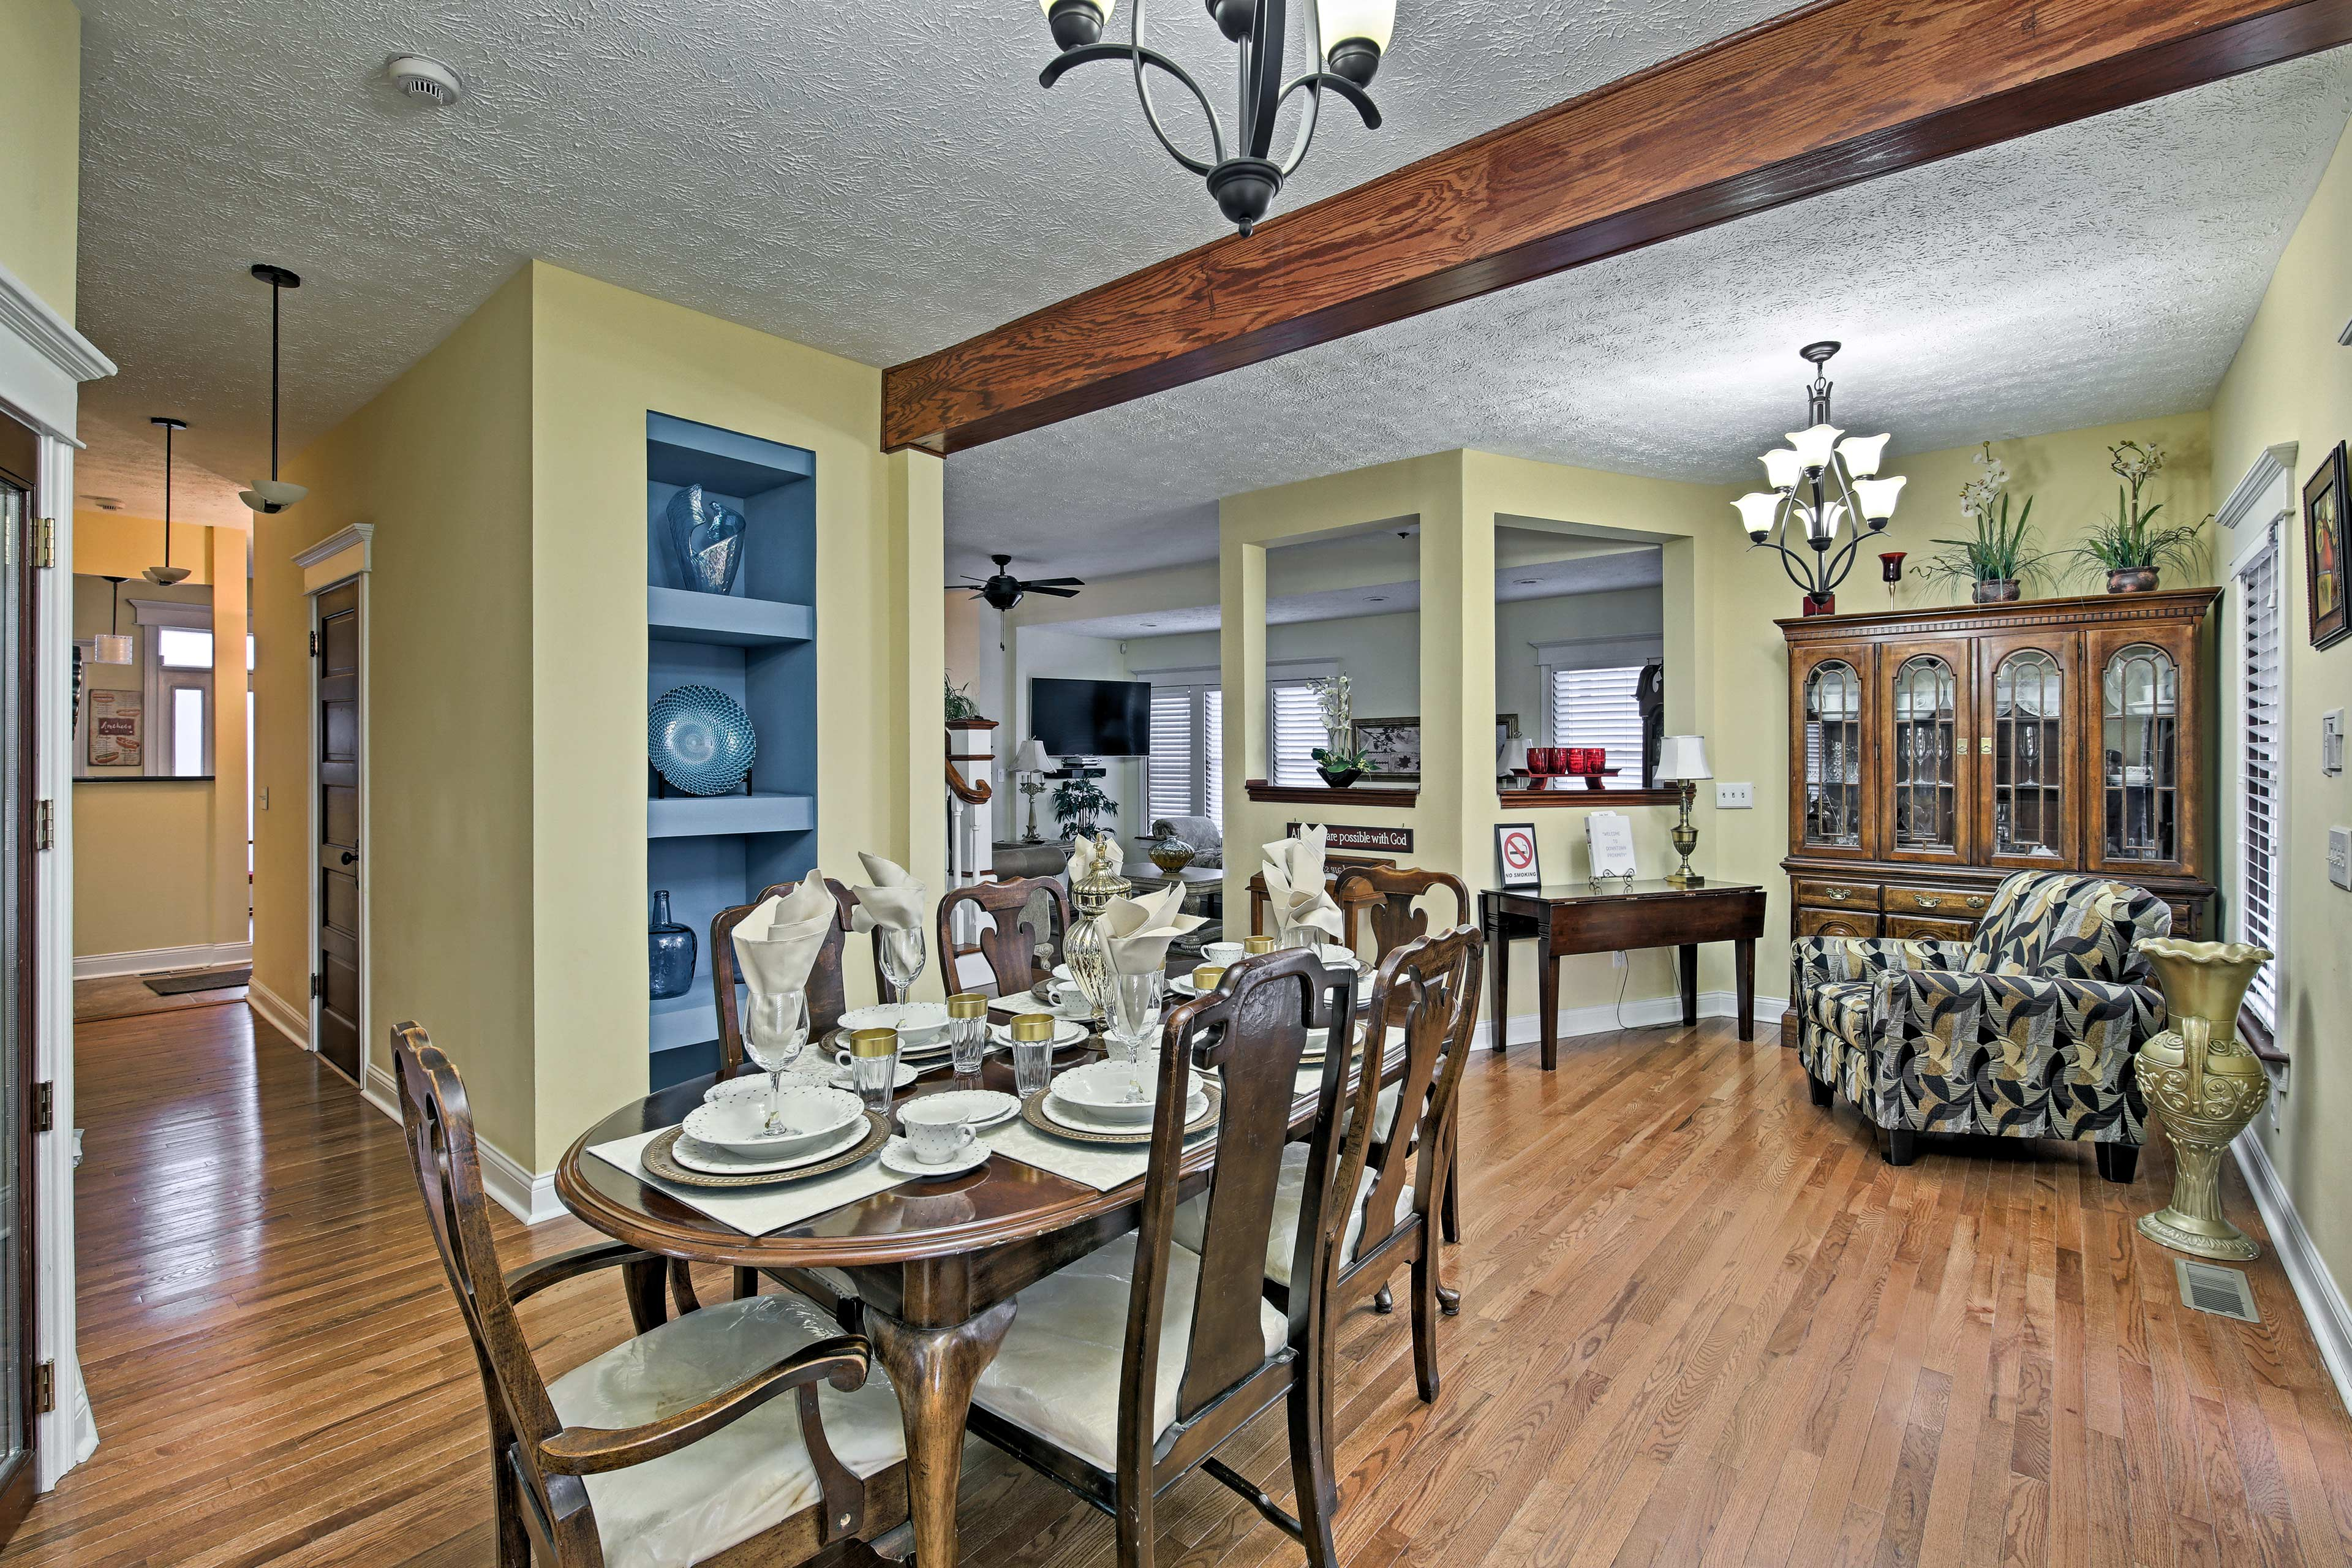 Enjoy a home-cooked meal at the dining table.